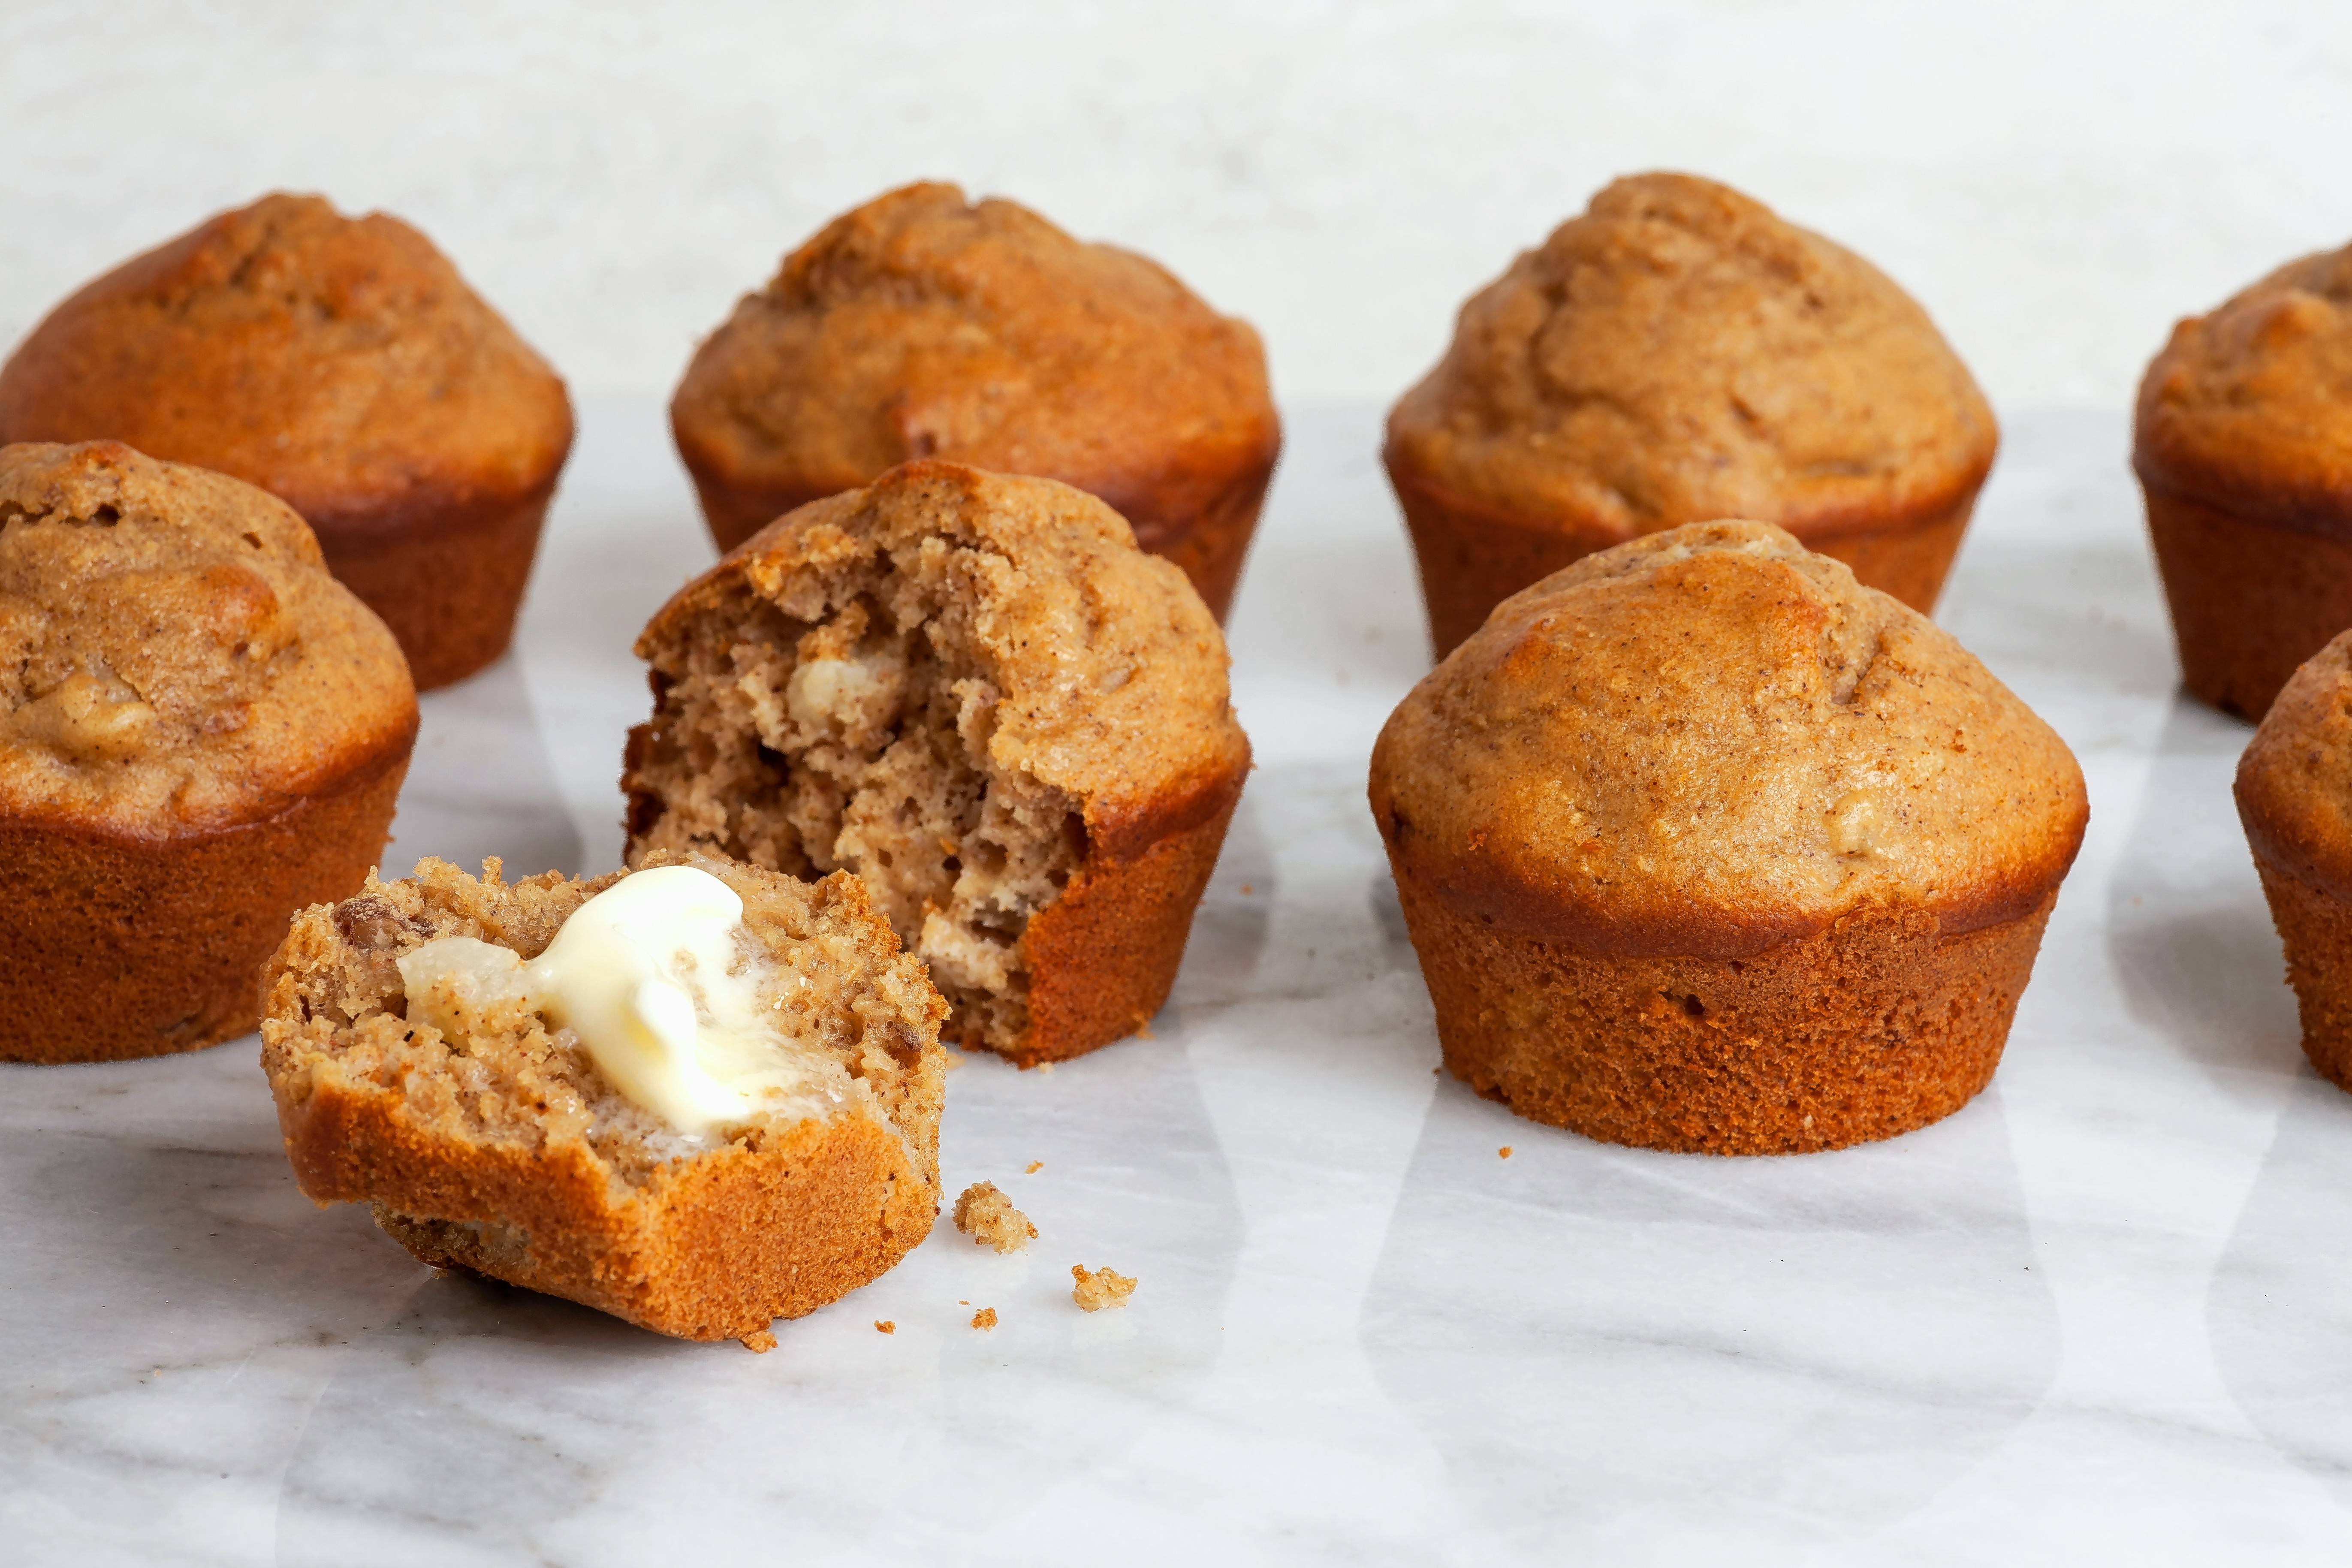 When you've had it up to here with pumpkin spice, try Pear Spice Muffins.